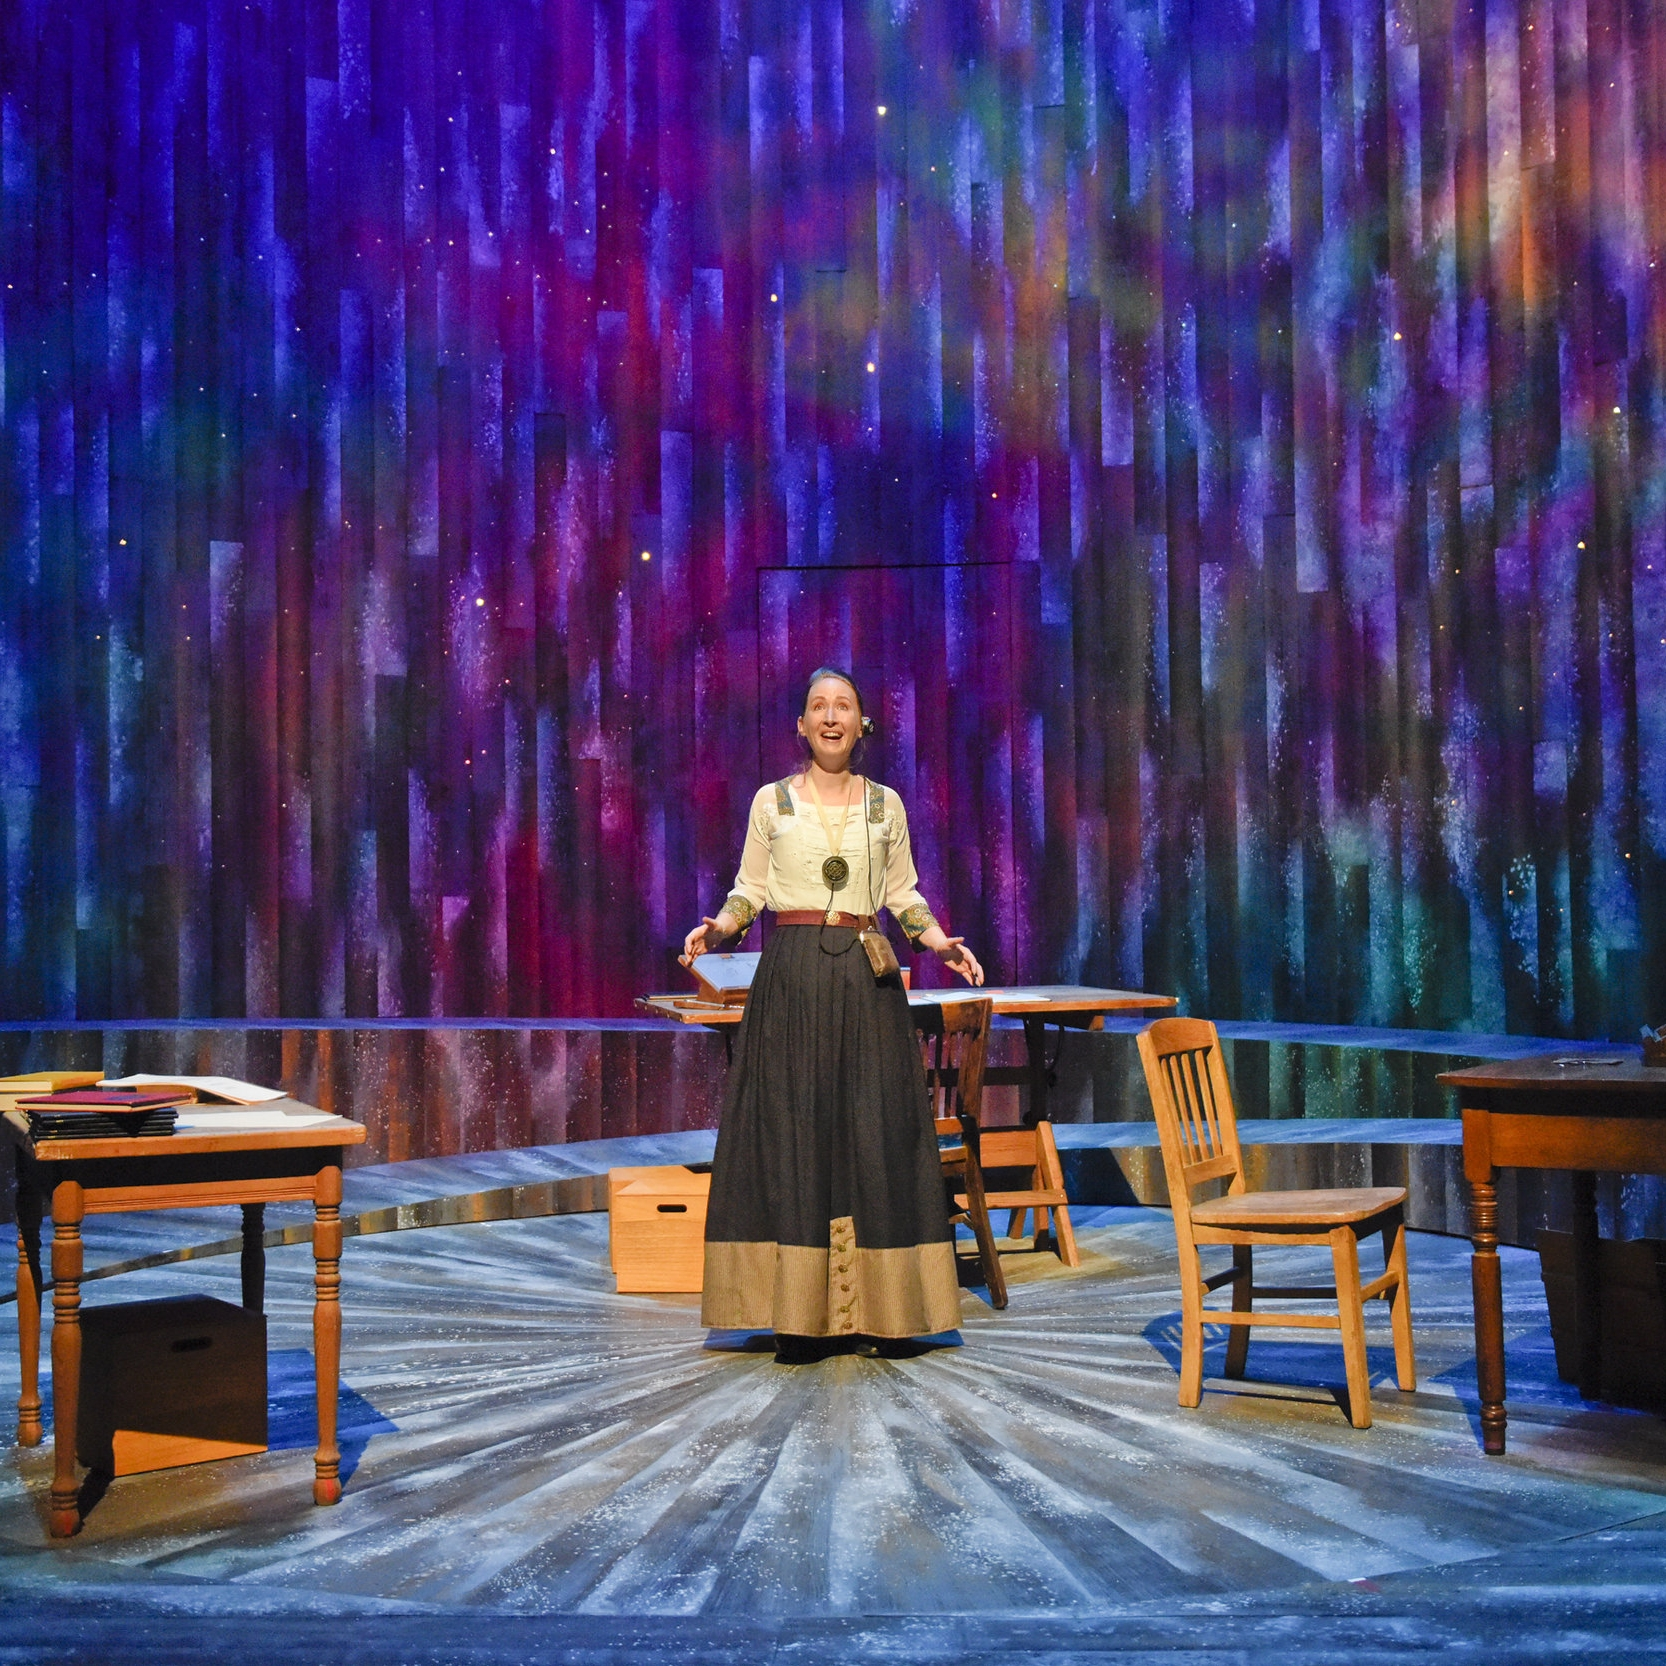 SILENT SKY by Lauren GundersonWaterTower Theatre - Directed by Kelsey Leigh ErviScenic Design by Clare Floyd DeVriesLighting Design by Leann BurnsCostume Design by Sylvia FuhrkenSound Design by Ryan JoynerPhotos by Karen Almond